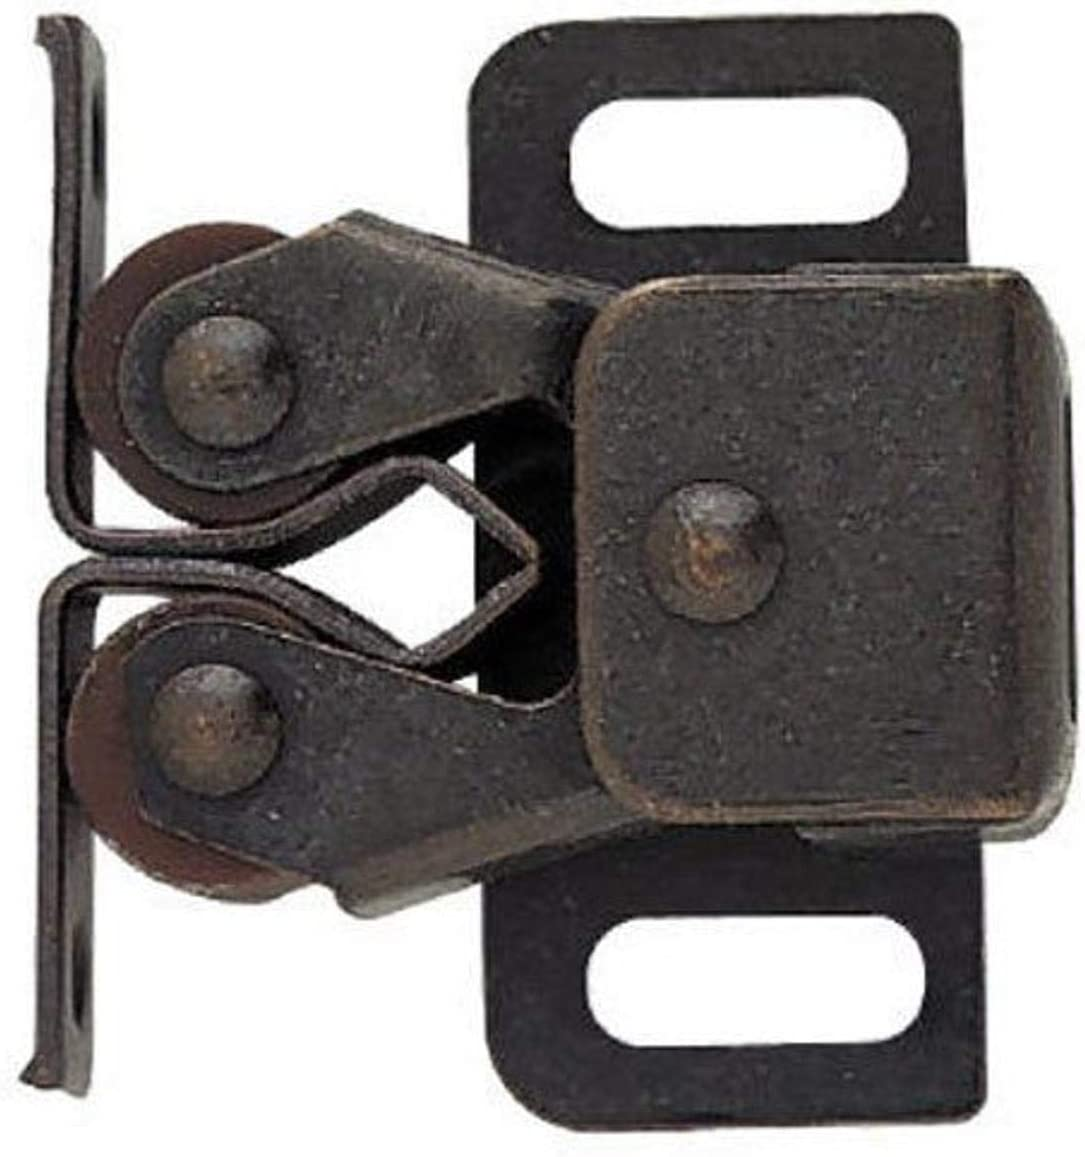 Liberty C08820L-STB-U Spring Max 49% OFF new work Double Roller Catch 2-P Spear Strike with